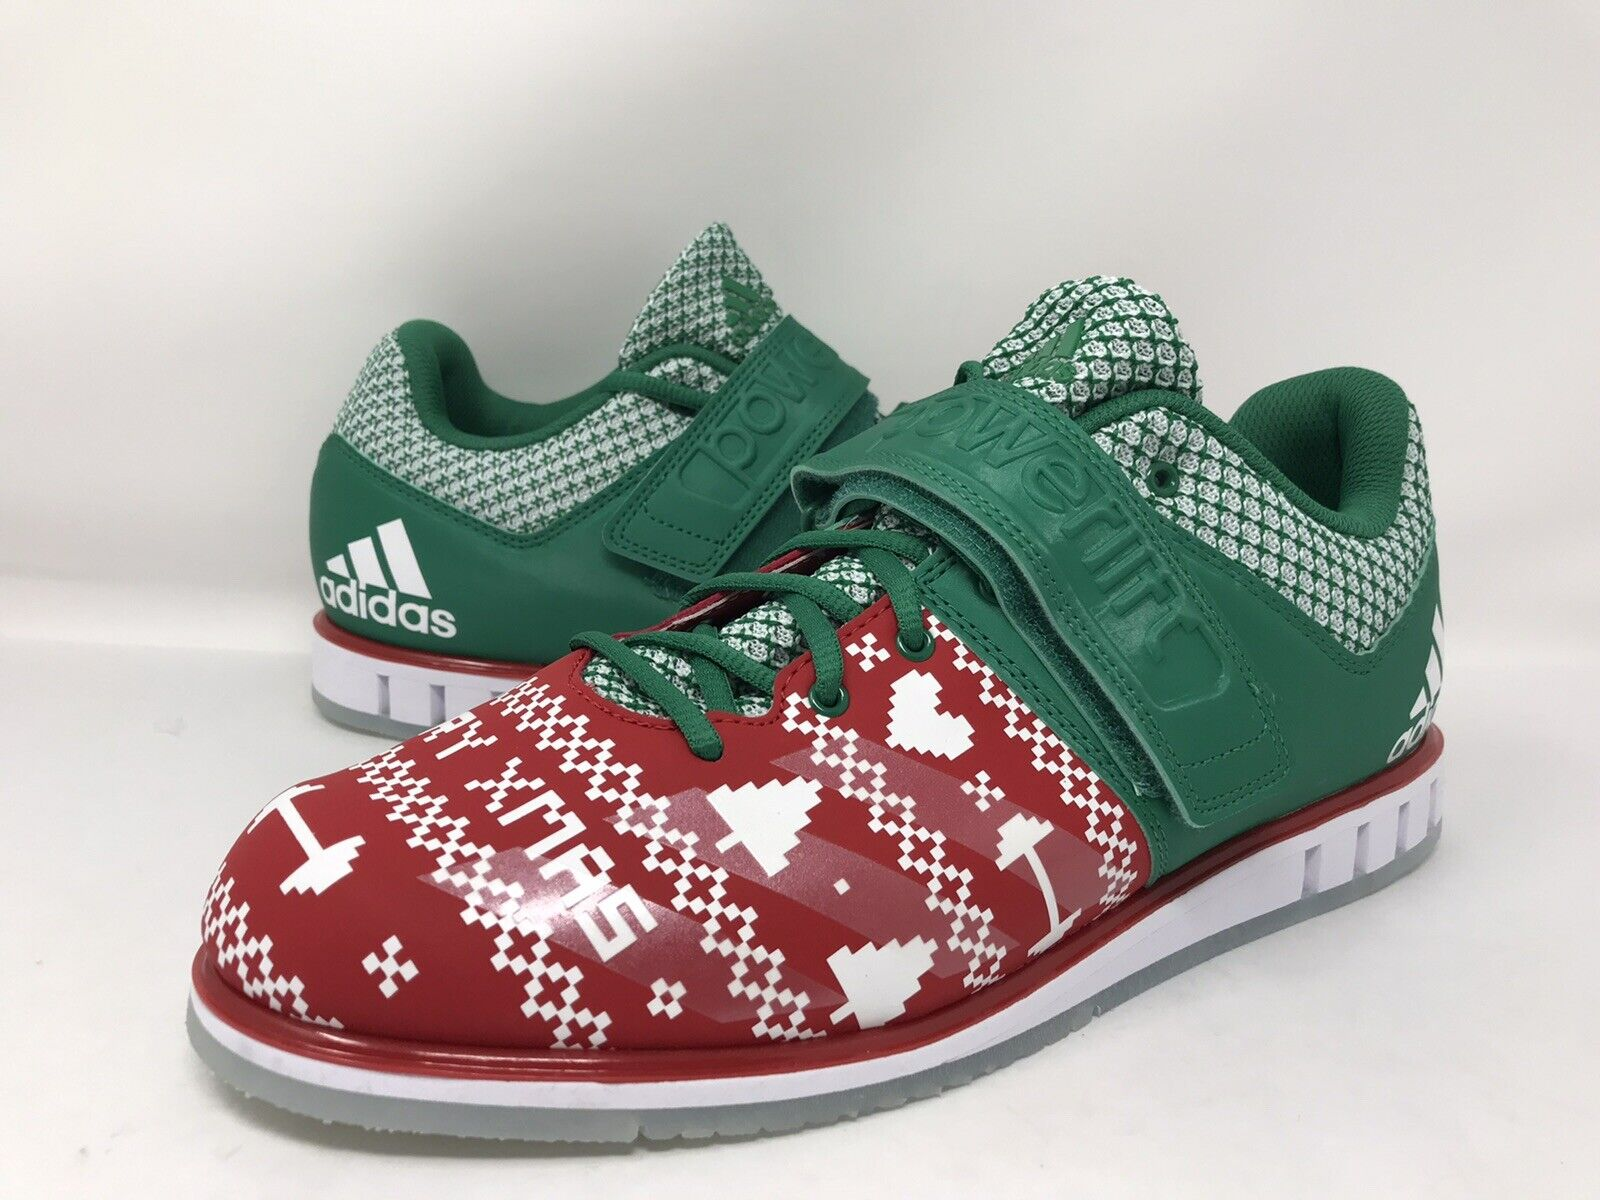 Adidas Powerlift 3.1 Christmas Edition Men Weightlifting Shoes Adidas CG6455 New